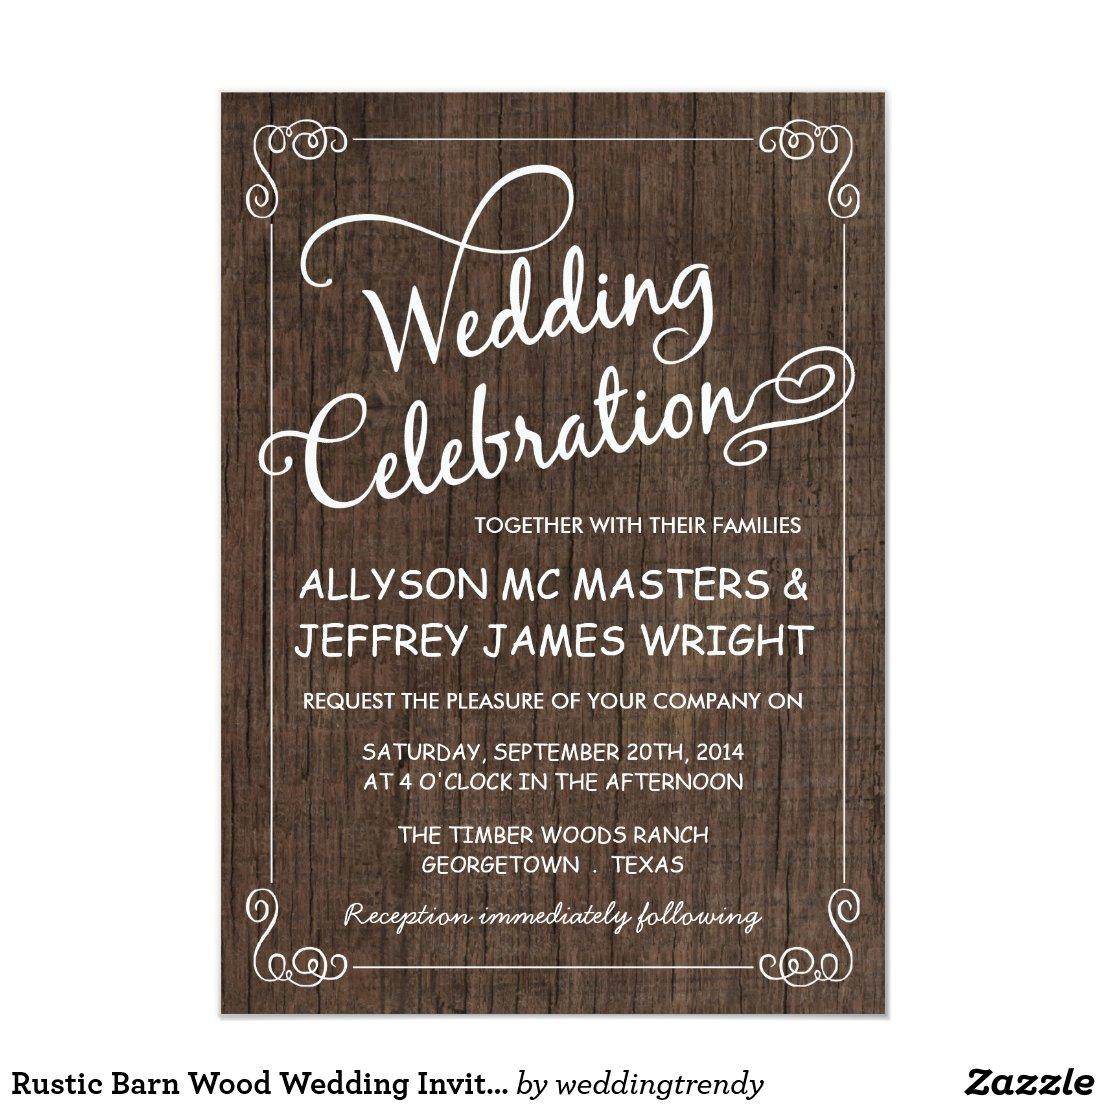 Rustic Barn Wood Wedding Invitations